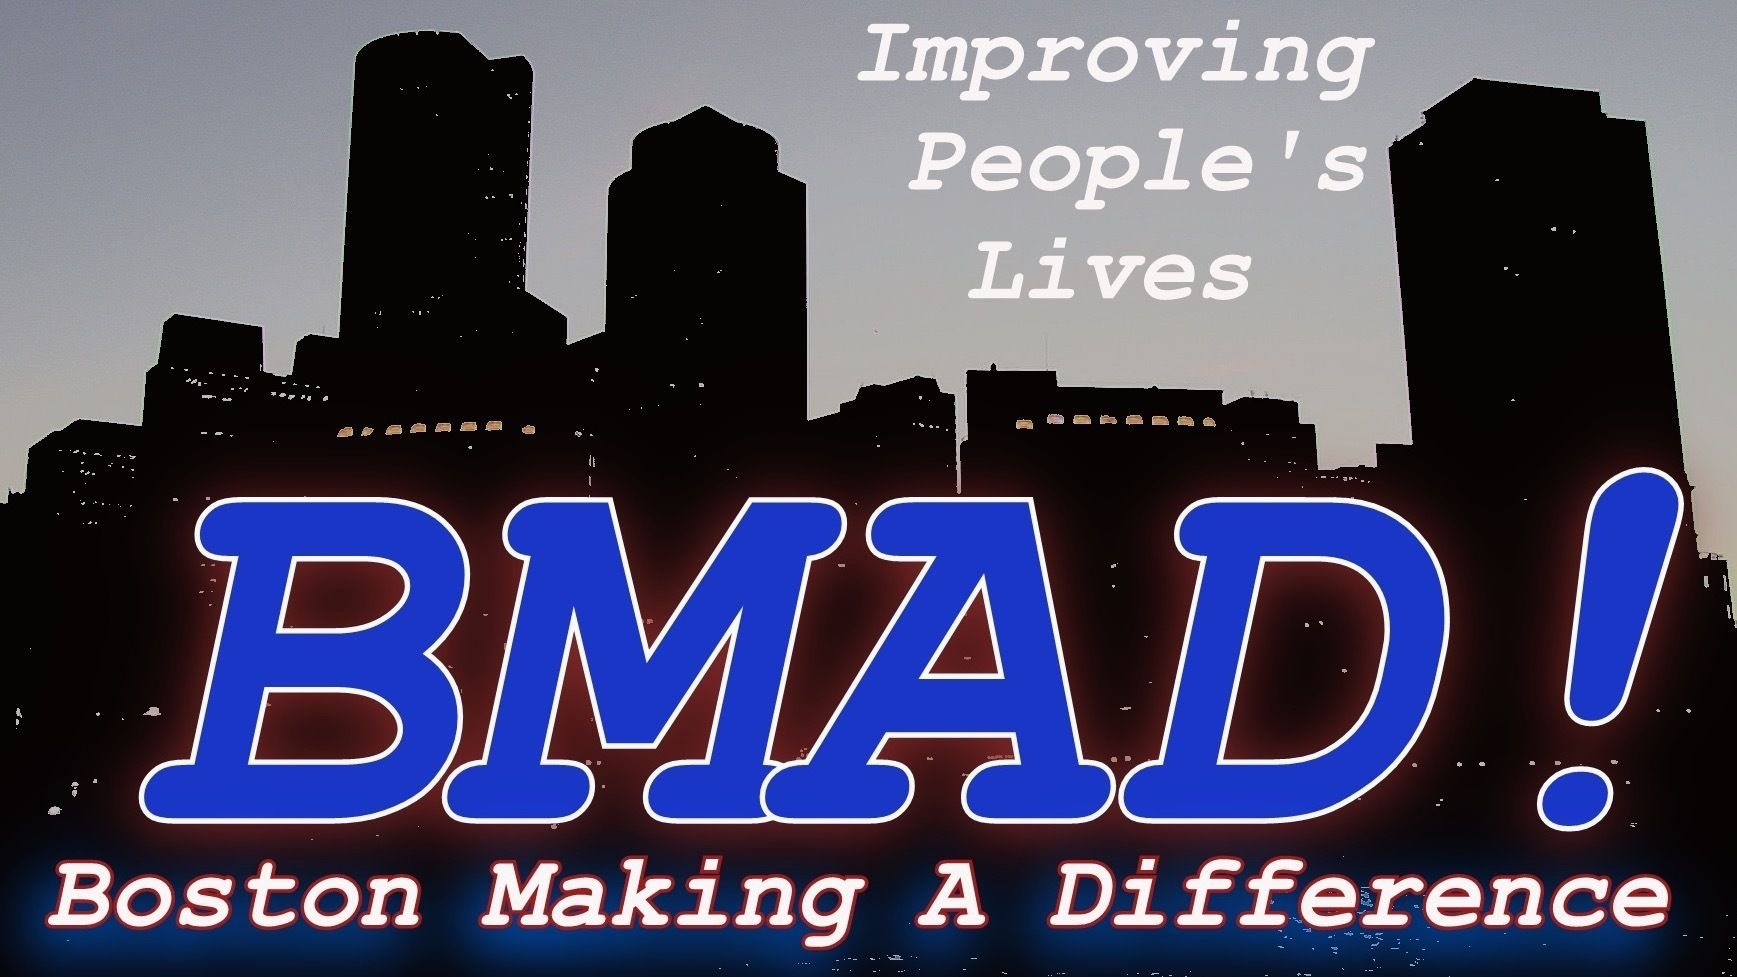 Boston Making A Difference logo BMAD